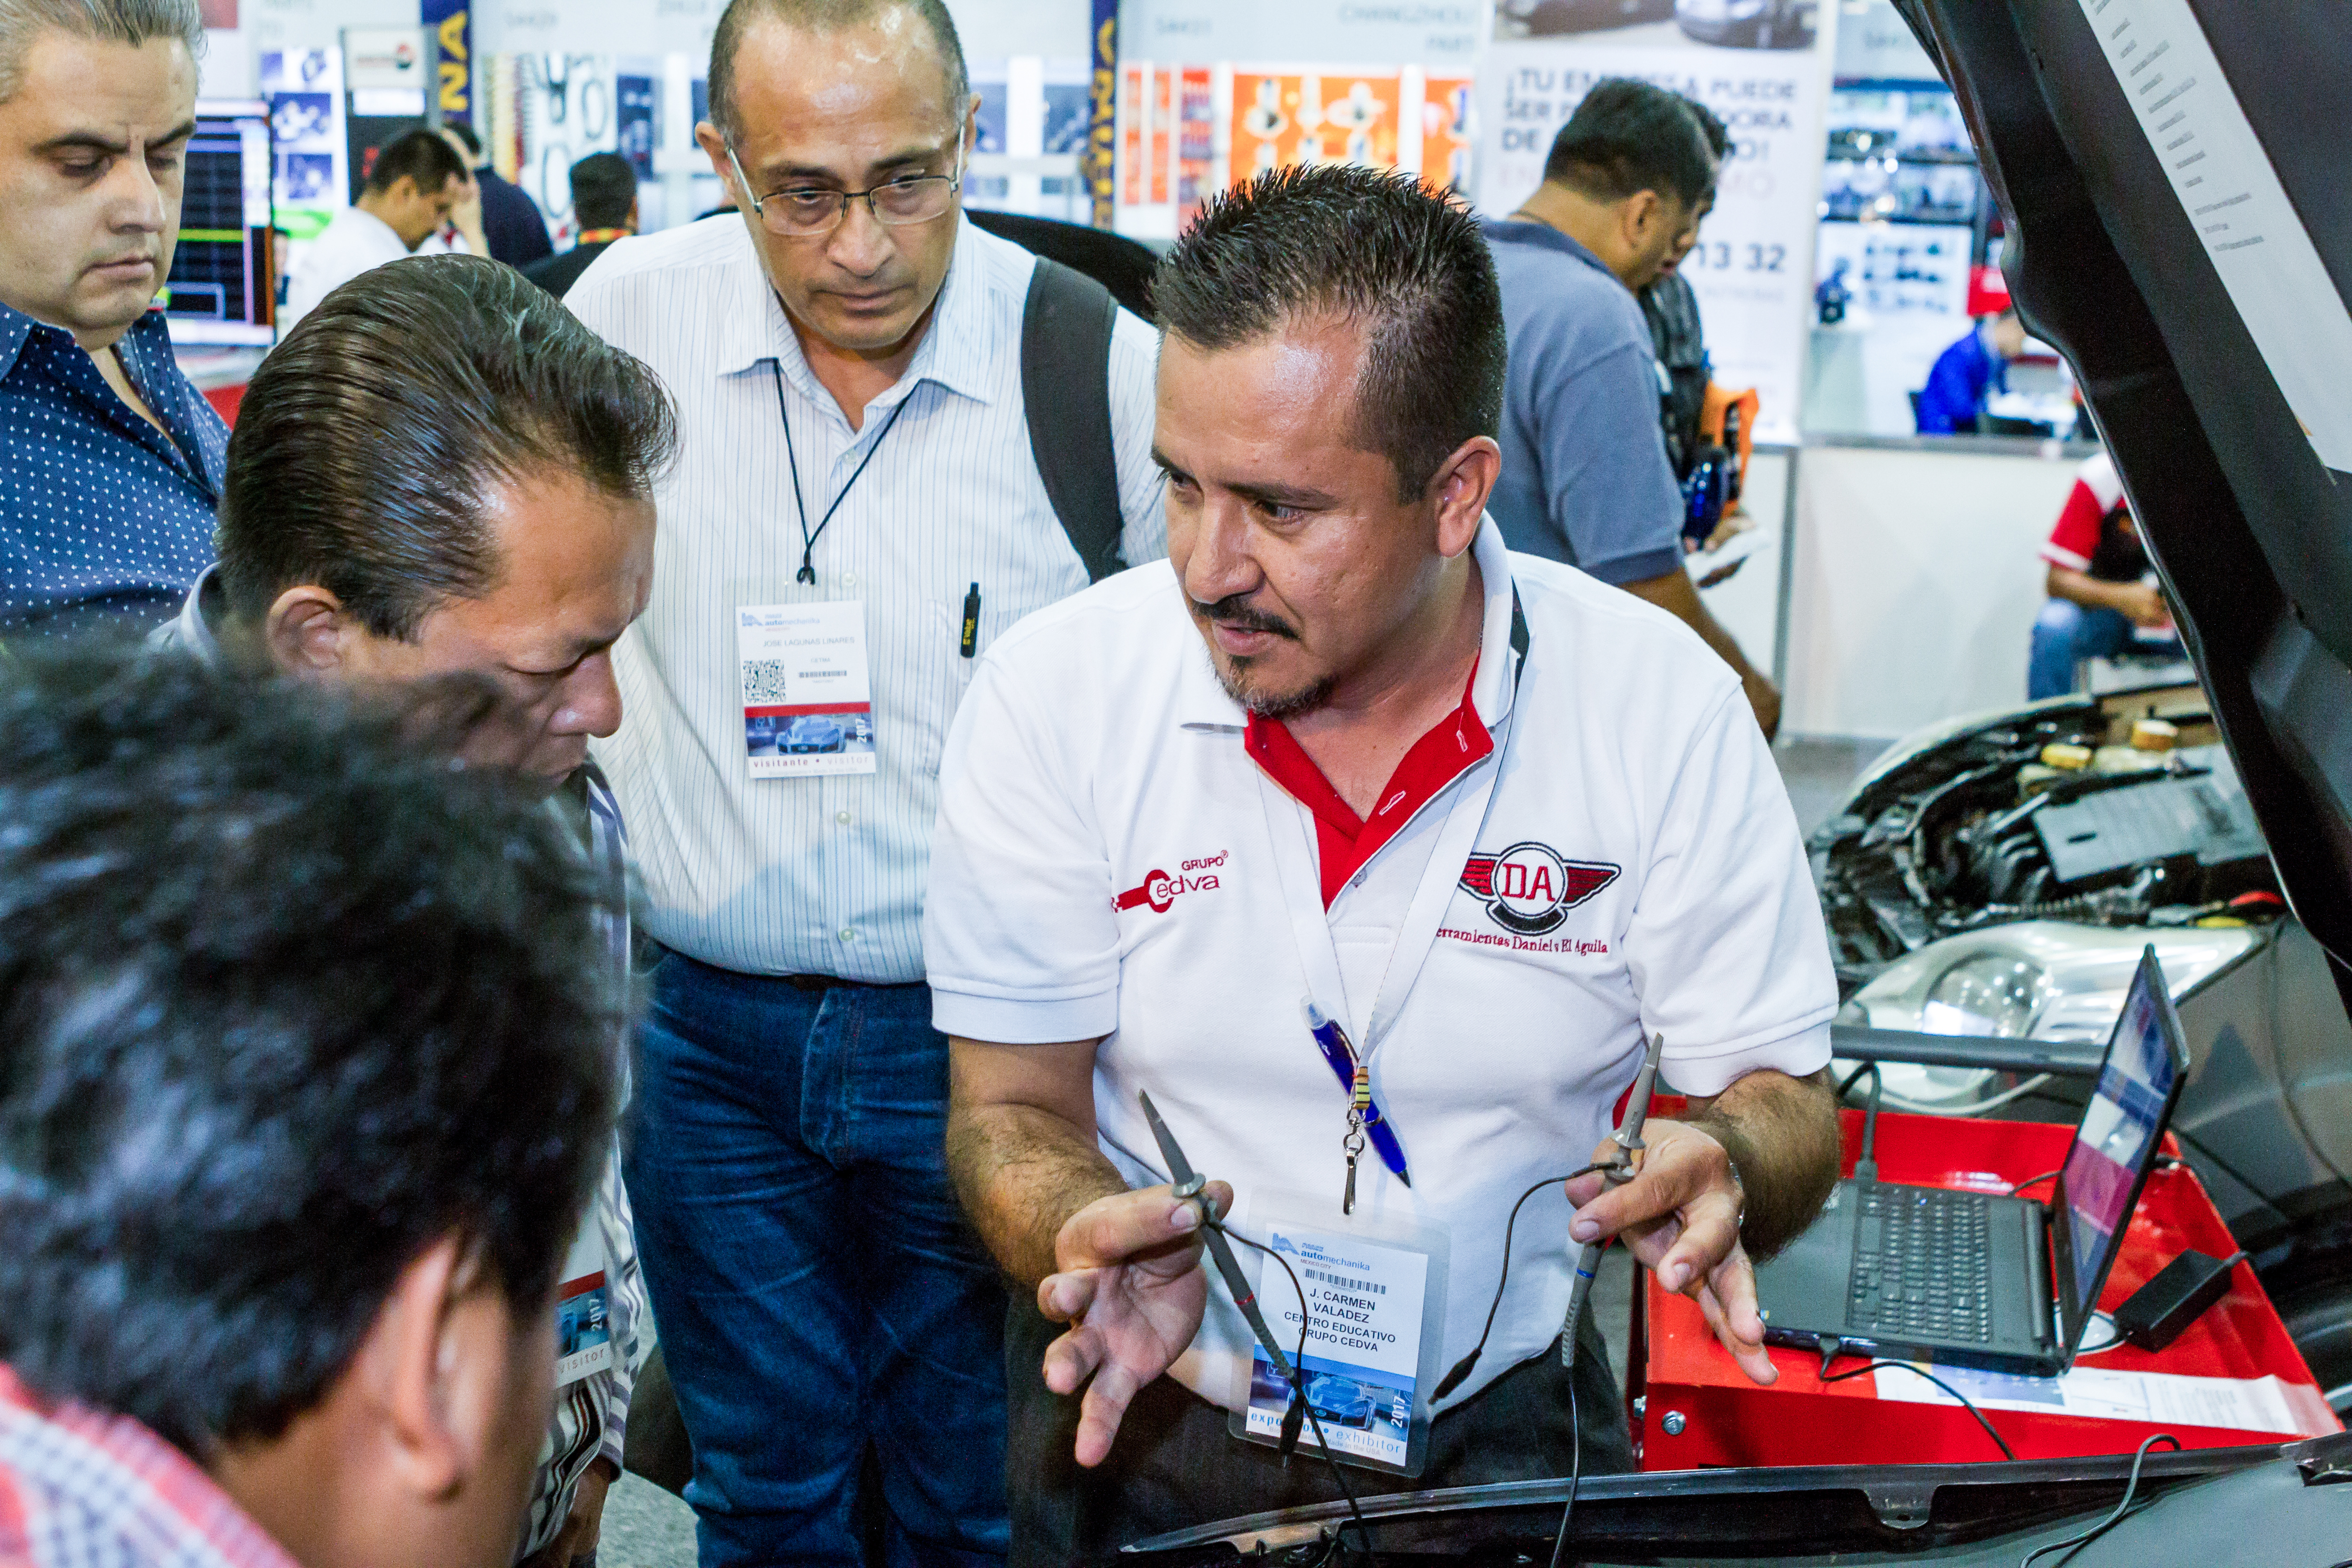 INA PAACE Automechanika Mexico City 2019 - Mexico Technology Summit